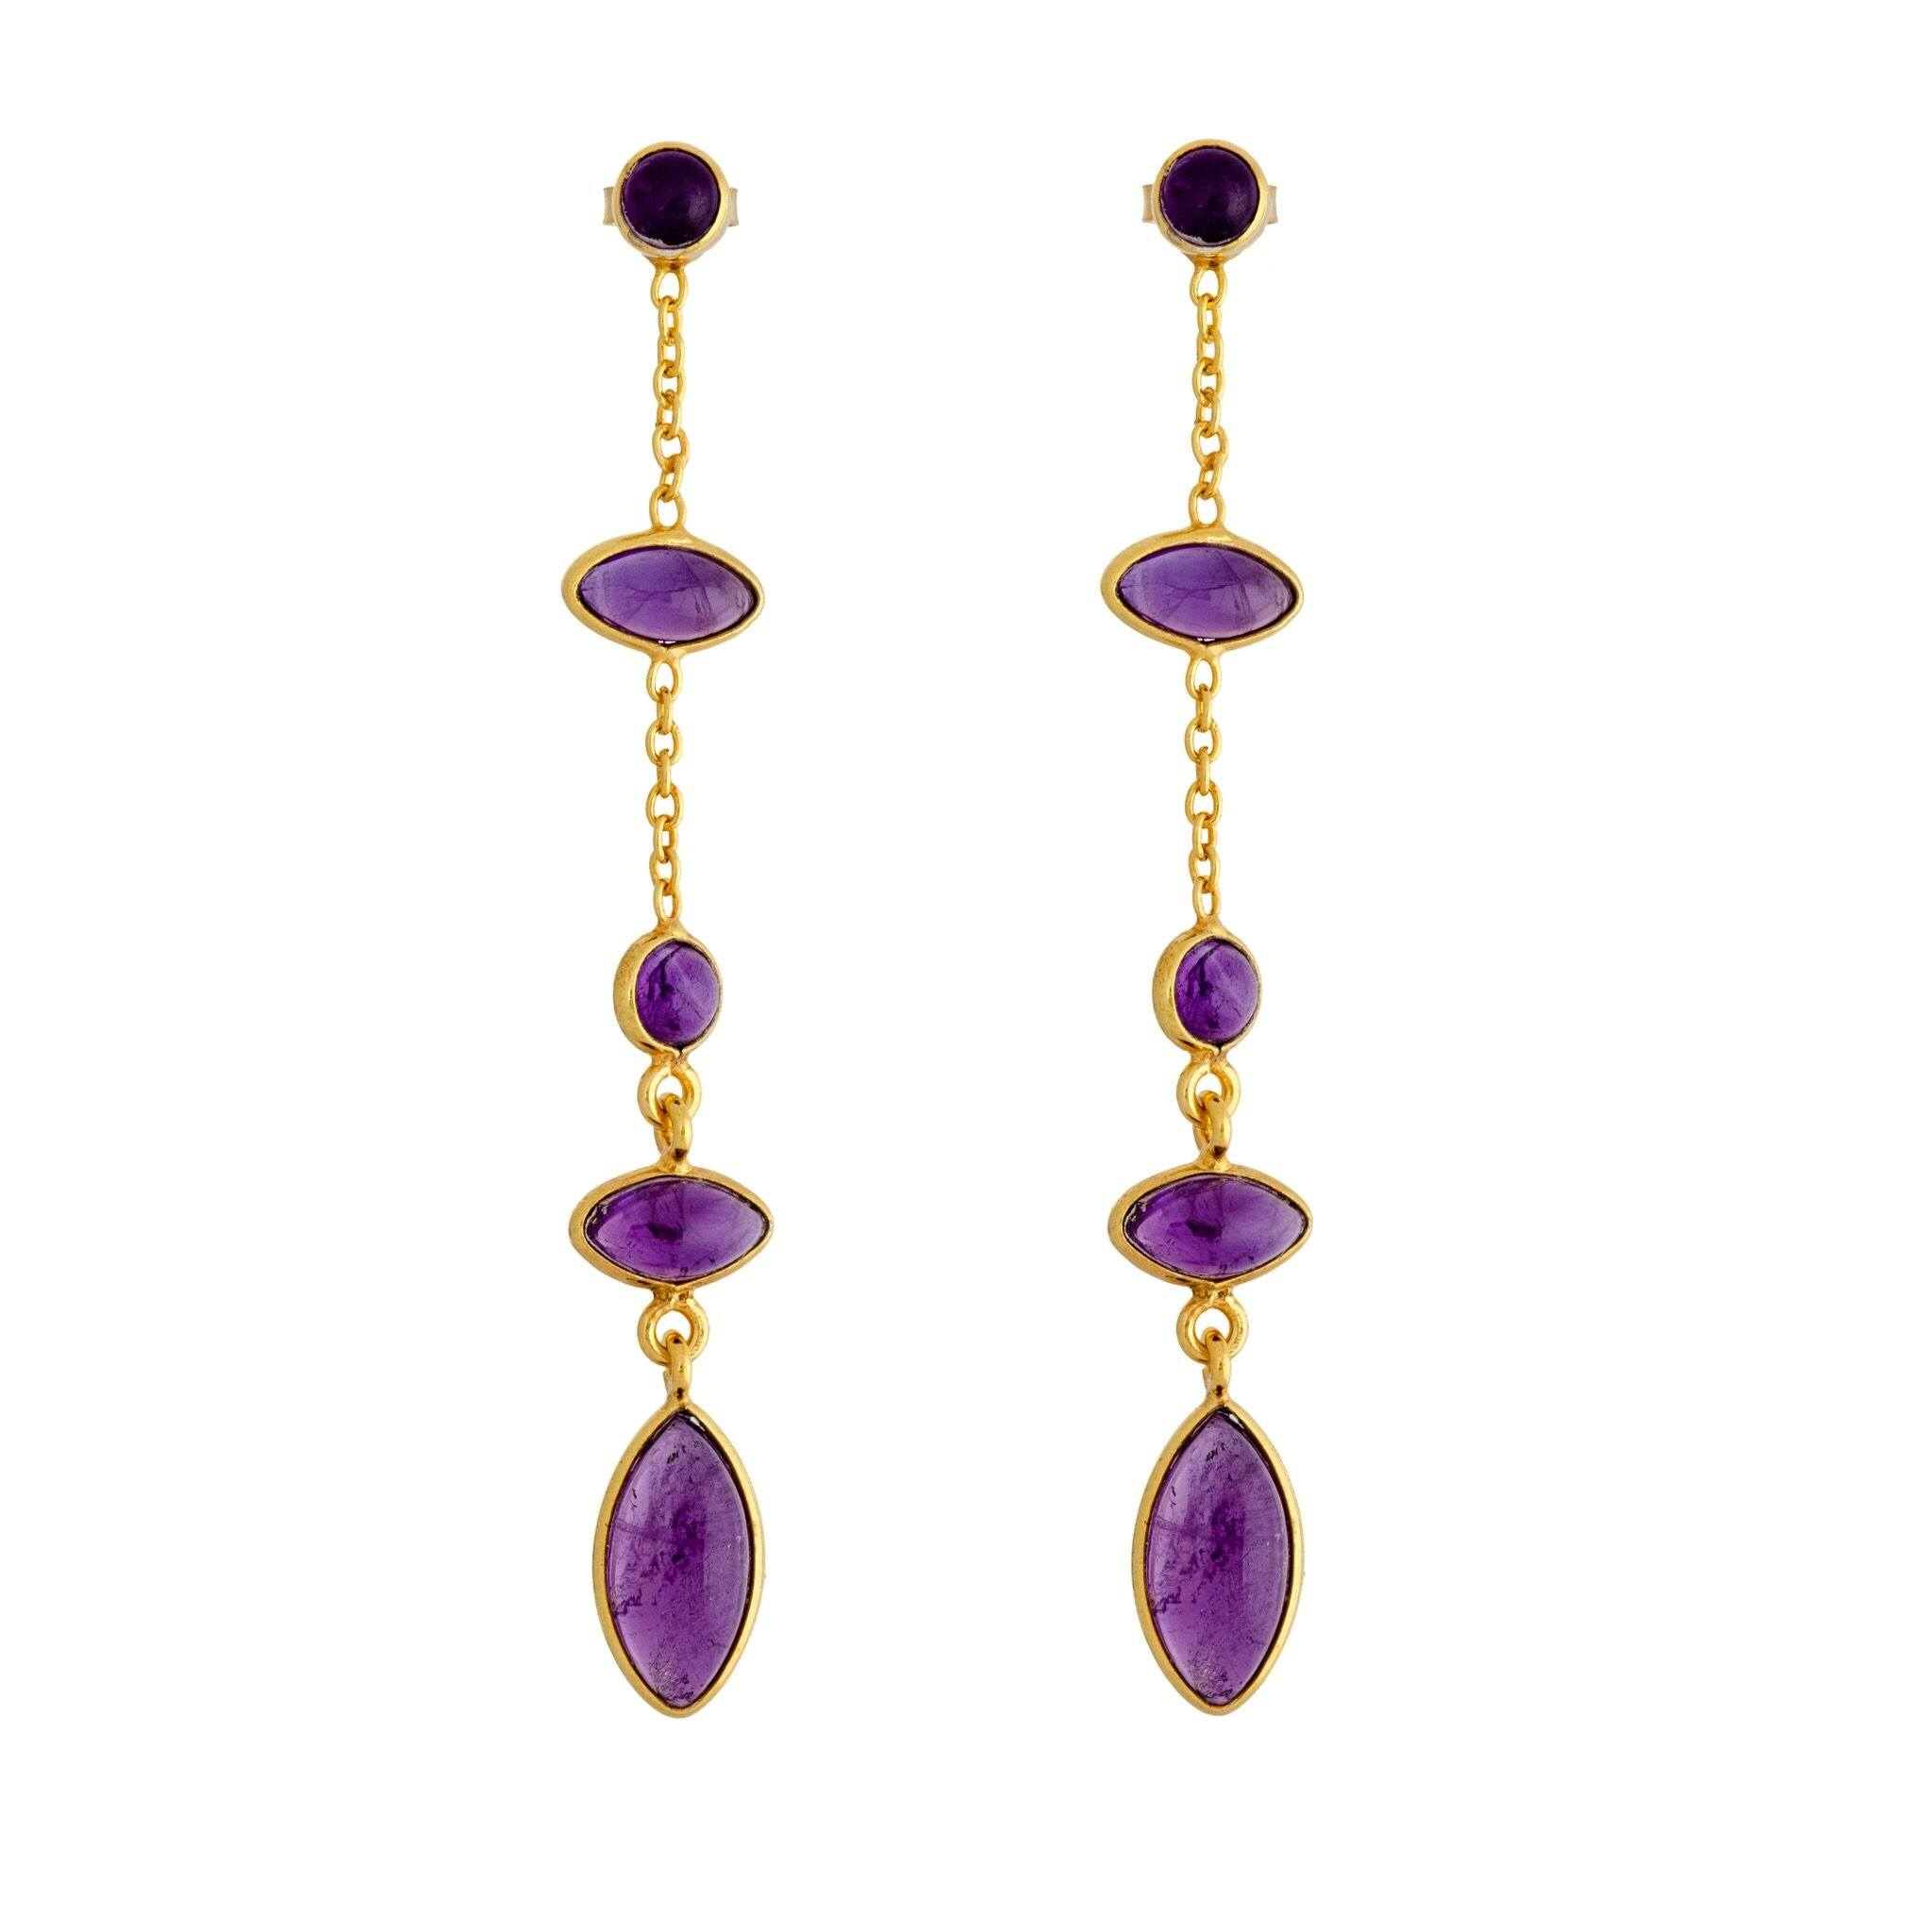 TA amethyst earrings